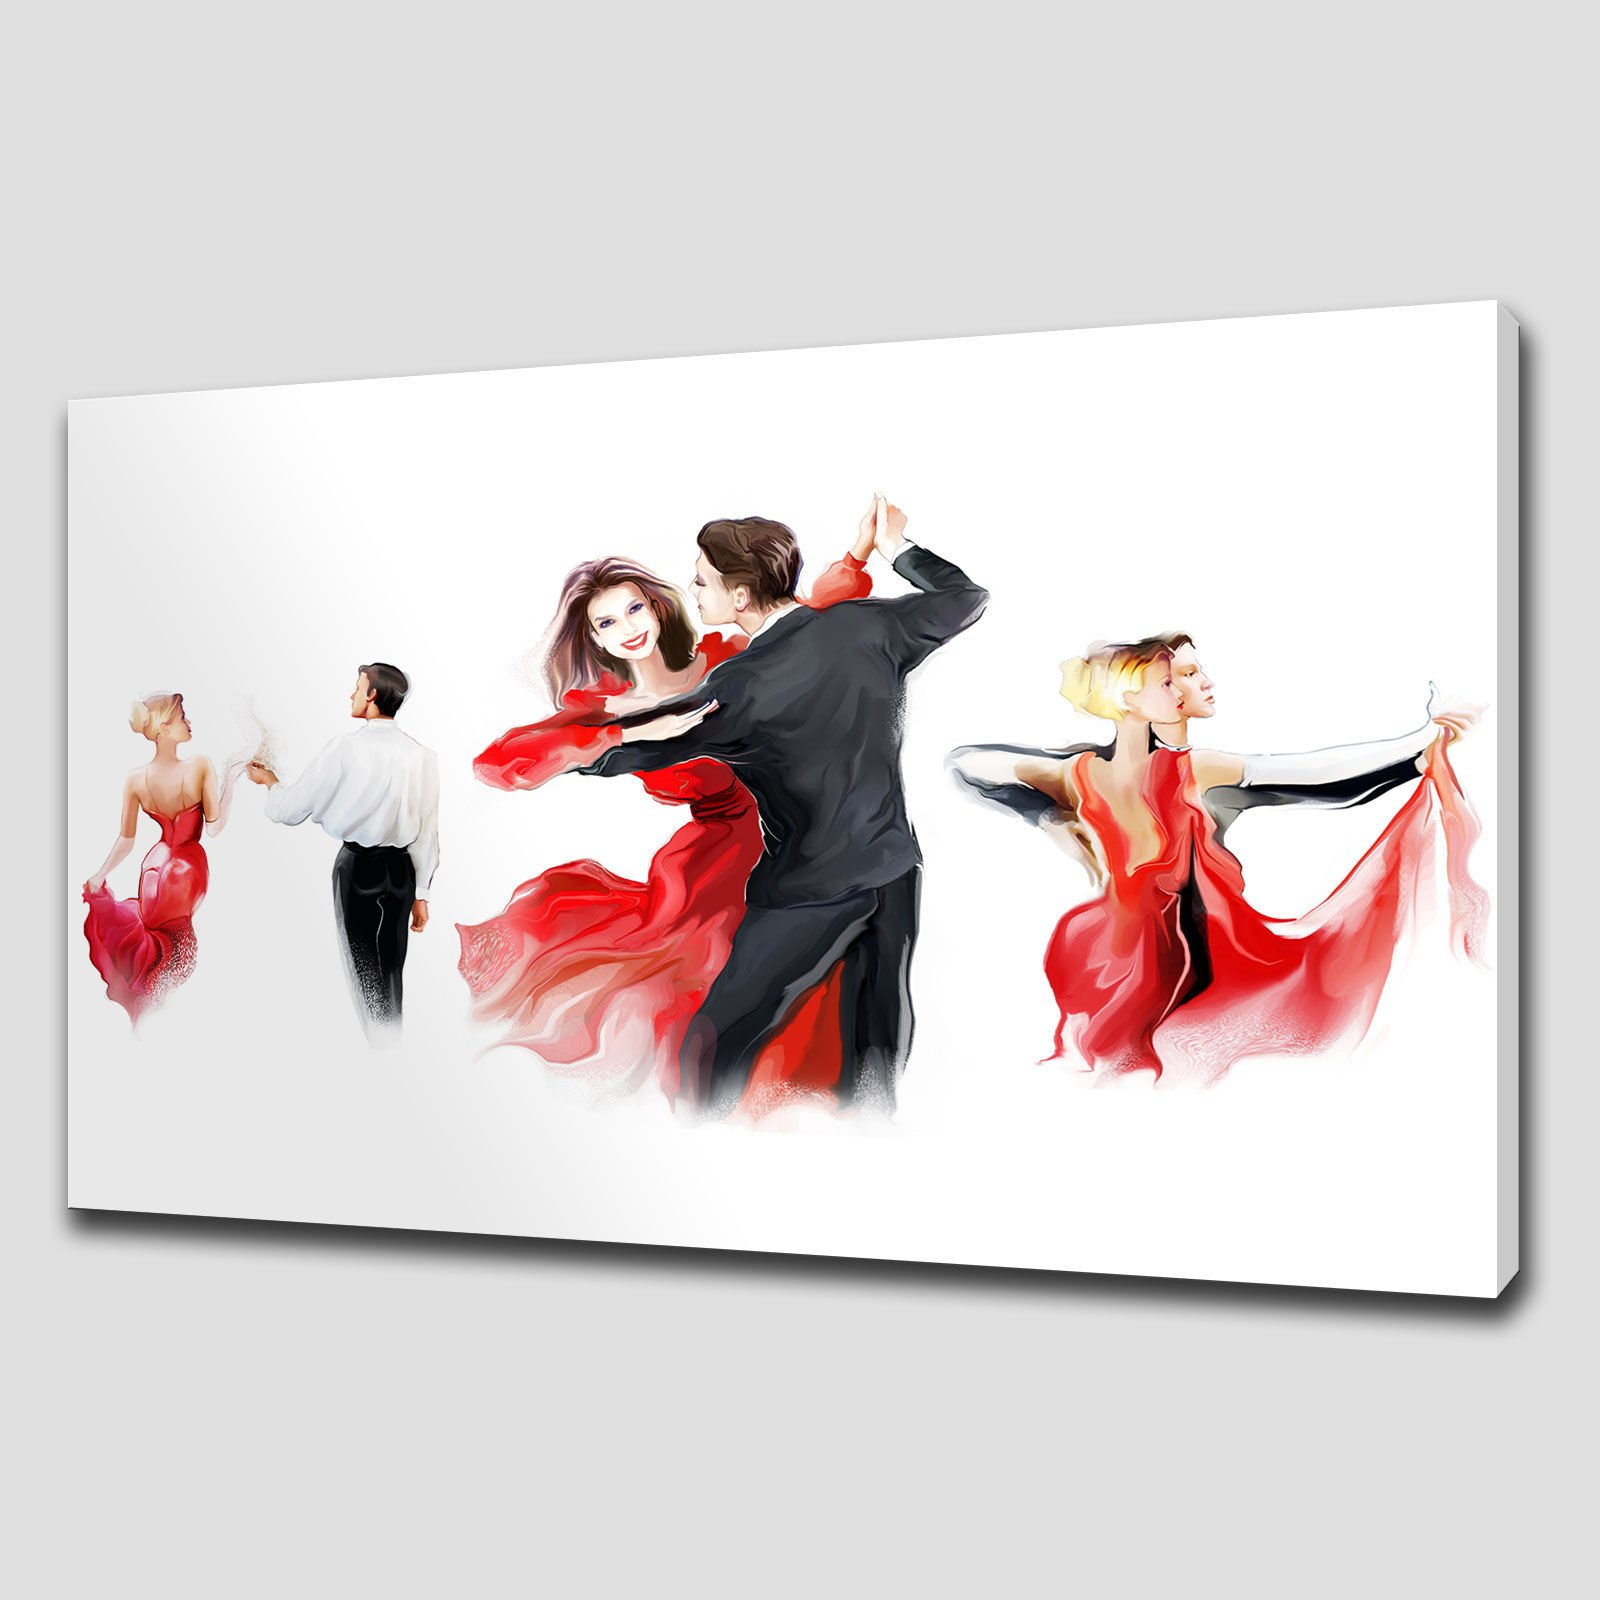 RED ABSTRACT DANCERS LARGE CANVAS WALL ART PICTURE PRINT HOME DECOR